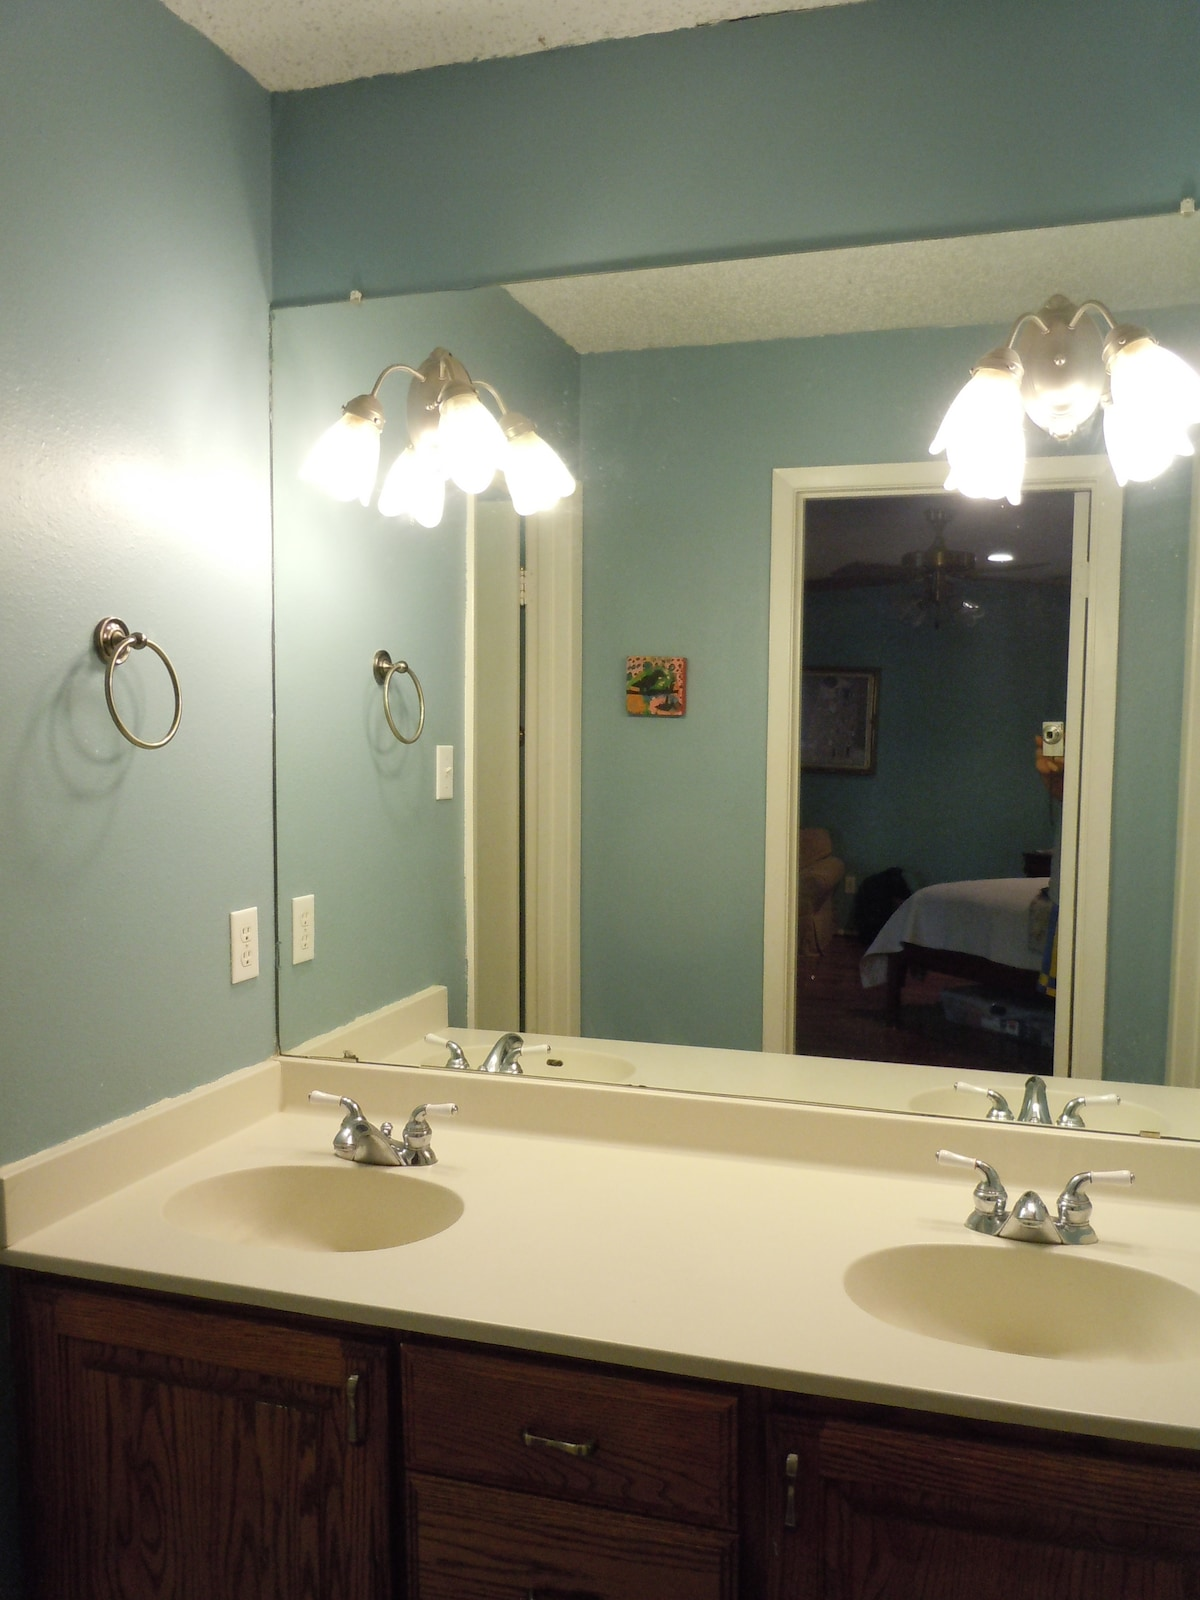 Downstairs bath has double sinks to speed getting ready in the morning.